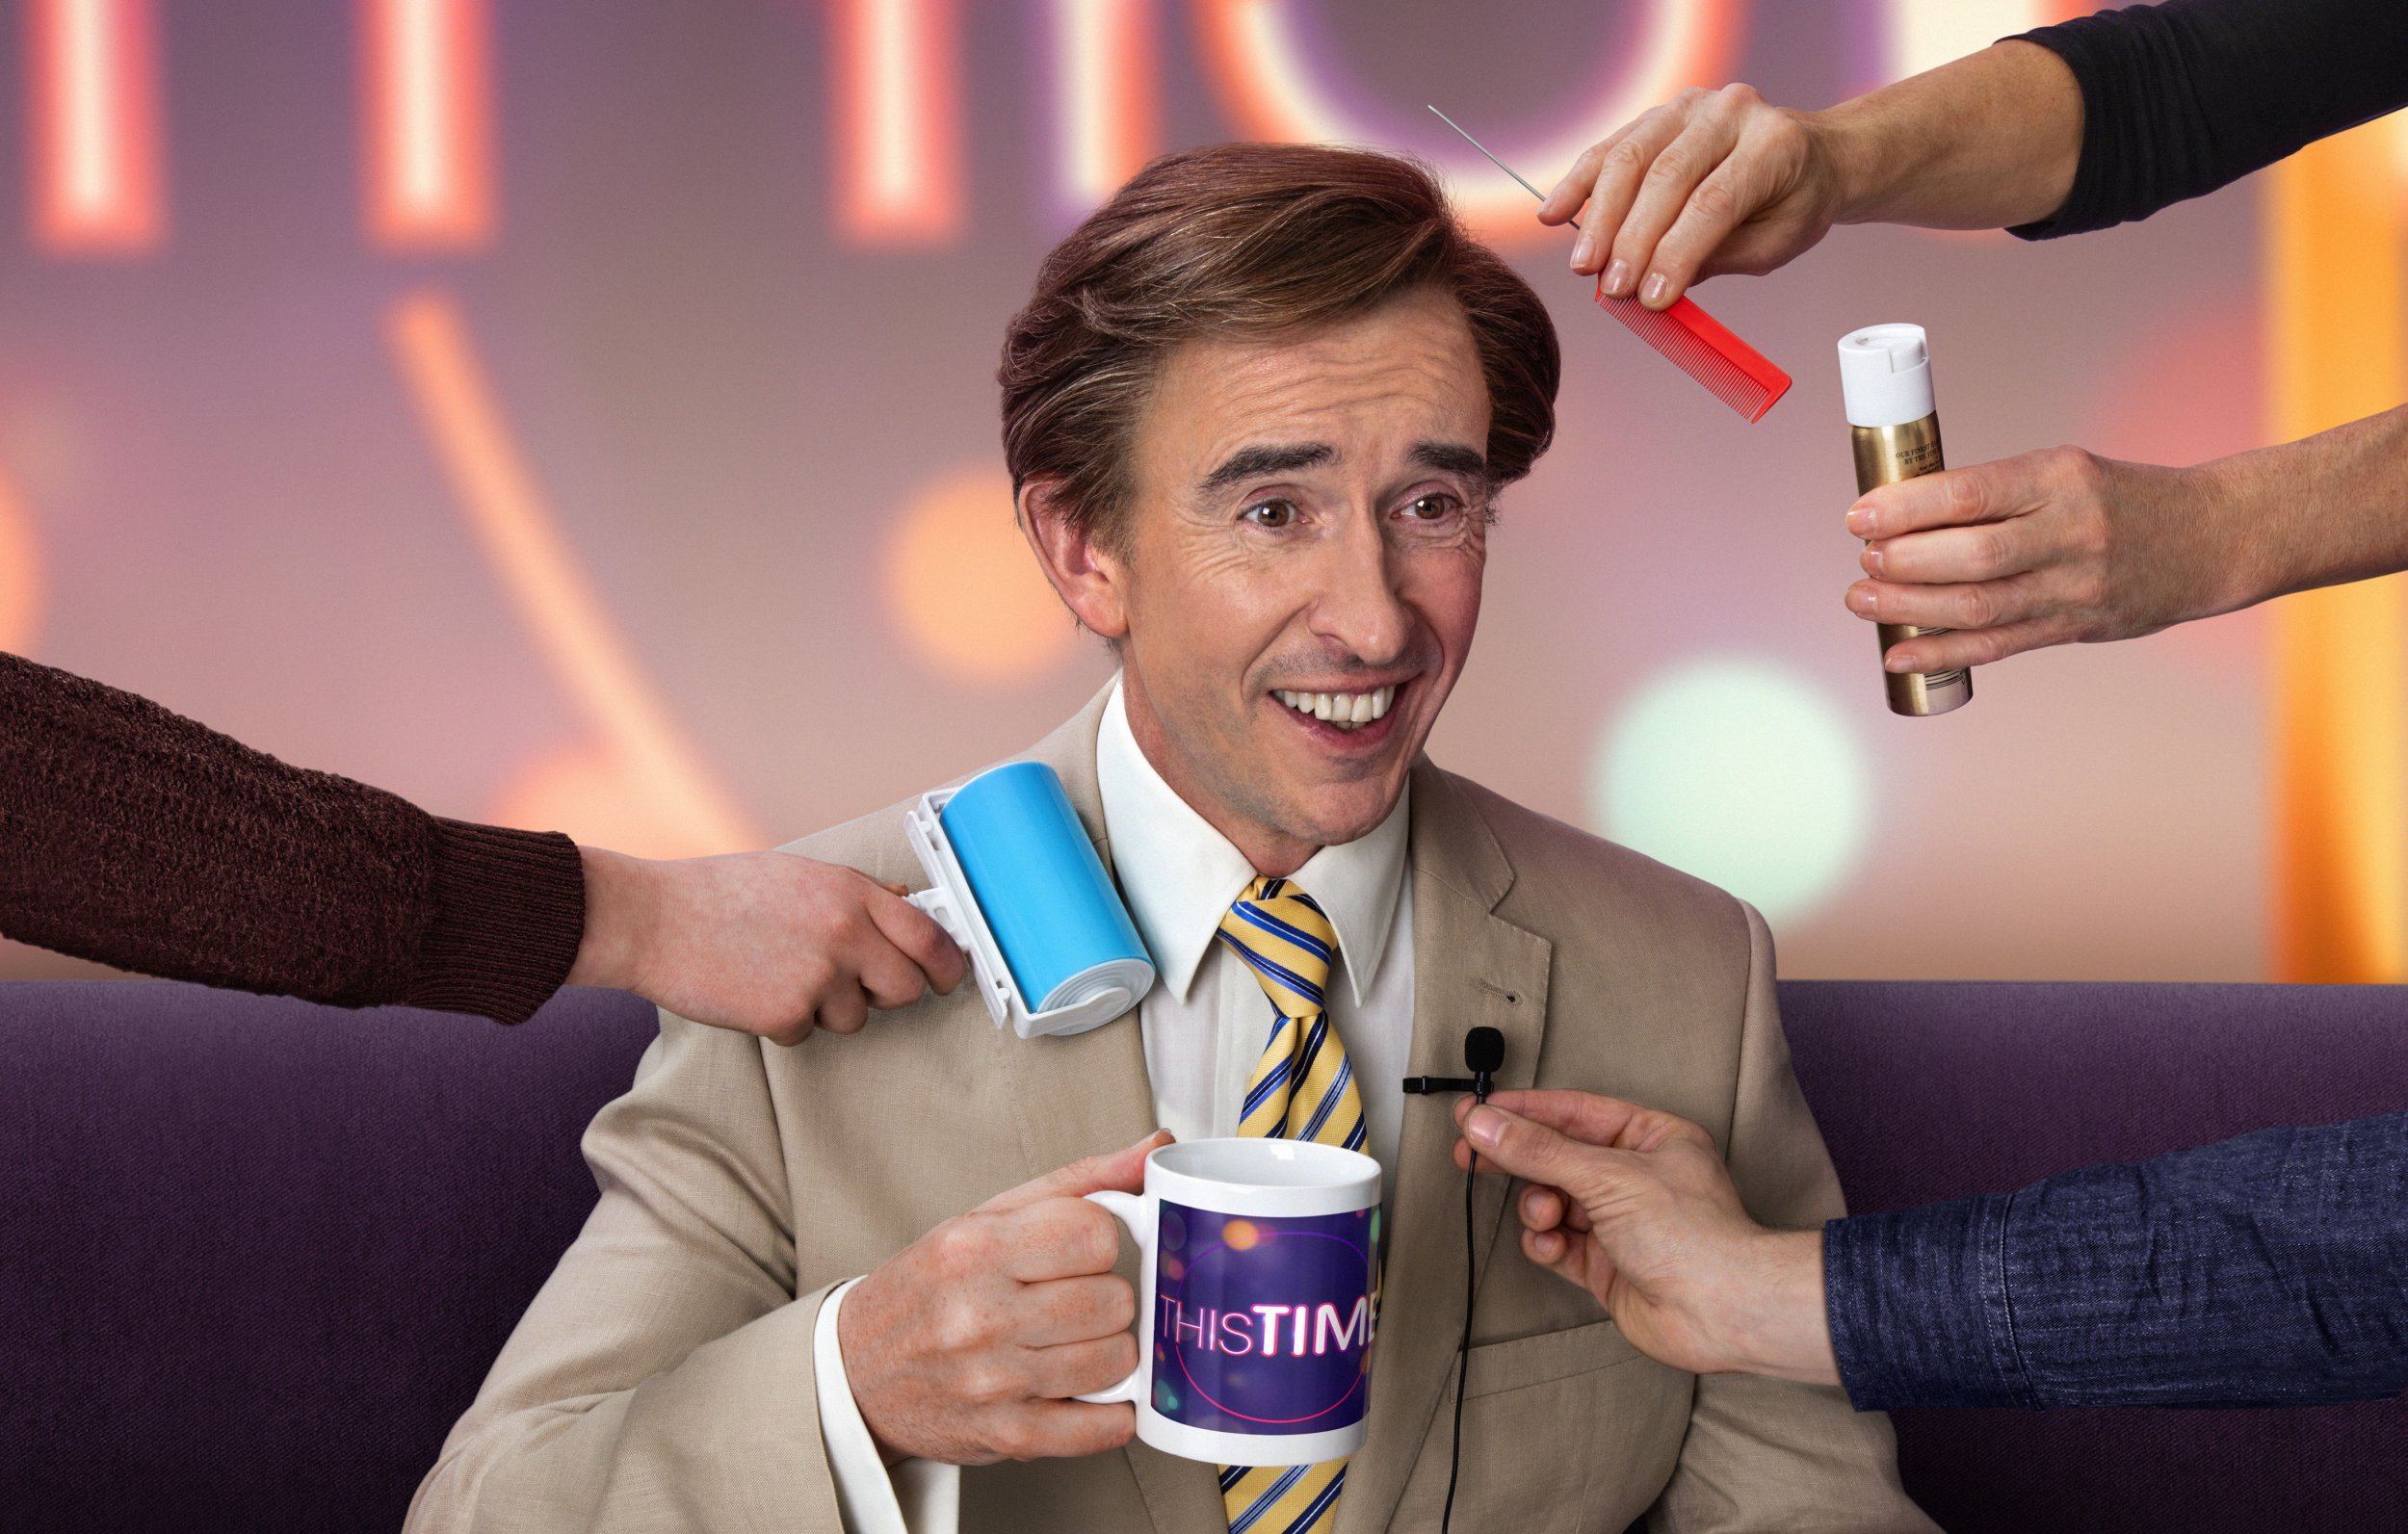 What time is This Time With Alan Partridge on tonight and what can we expect from the show?